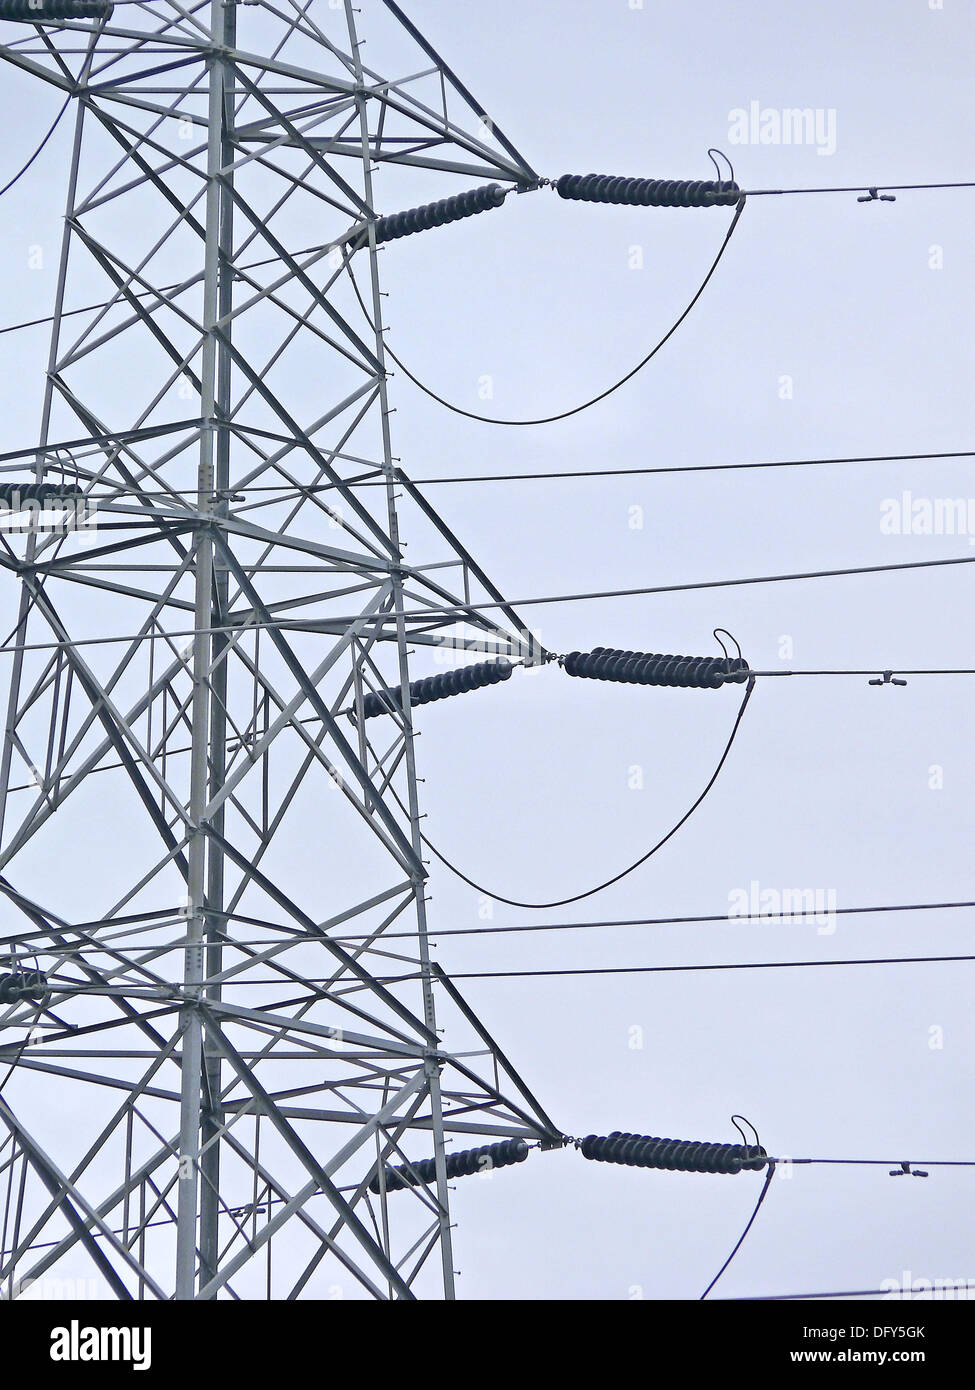 High Voltage Transmission Line Cable : High voltage cable stock photos